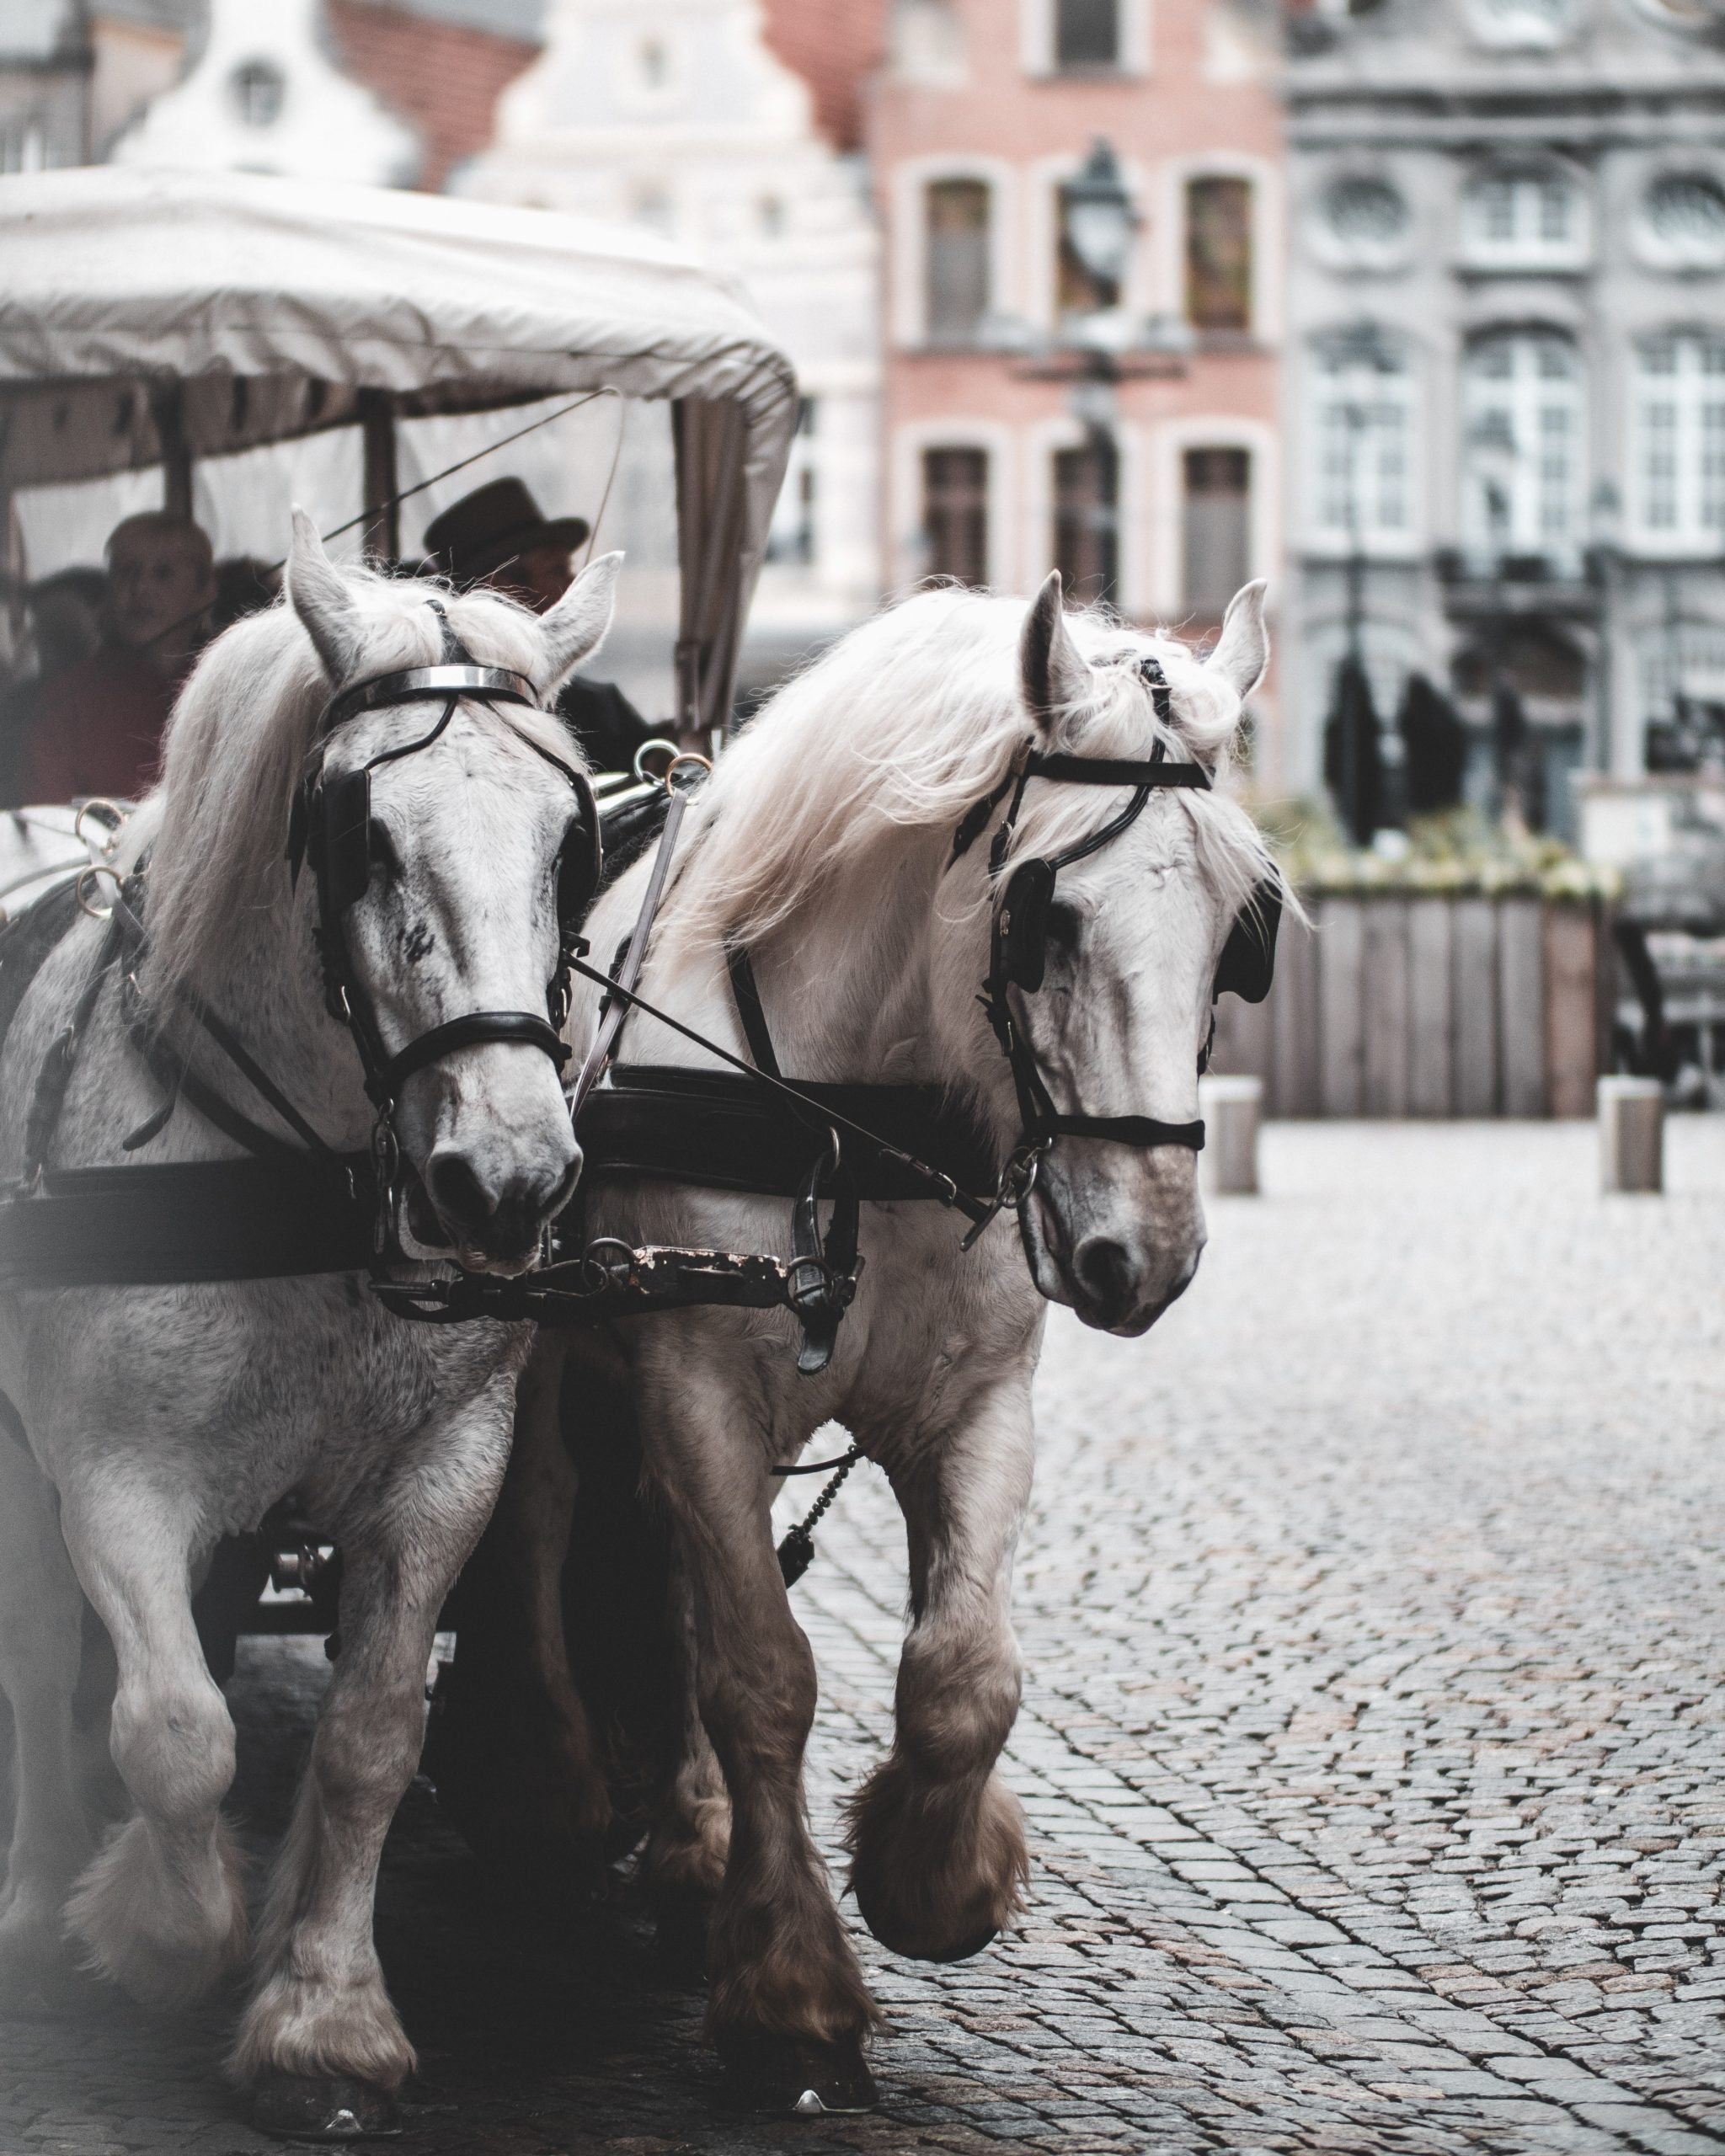 The Horse is always before the cart. If you put in the effort, hopefully you'll find the cart holds a reward.